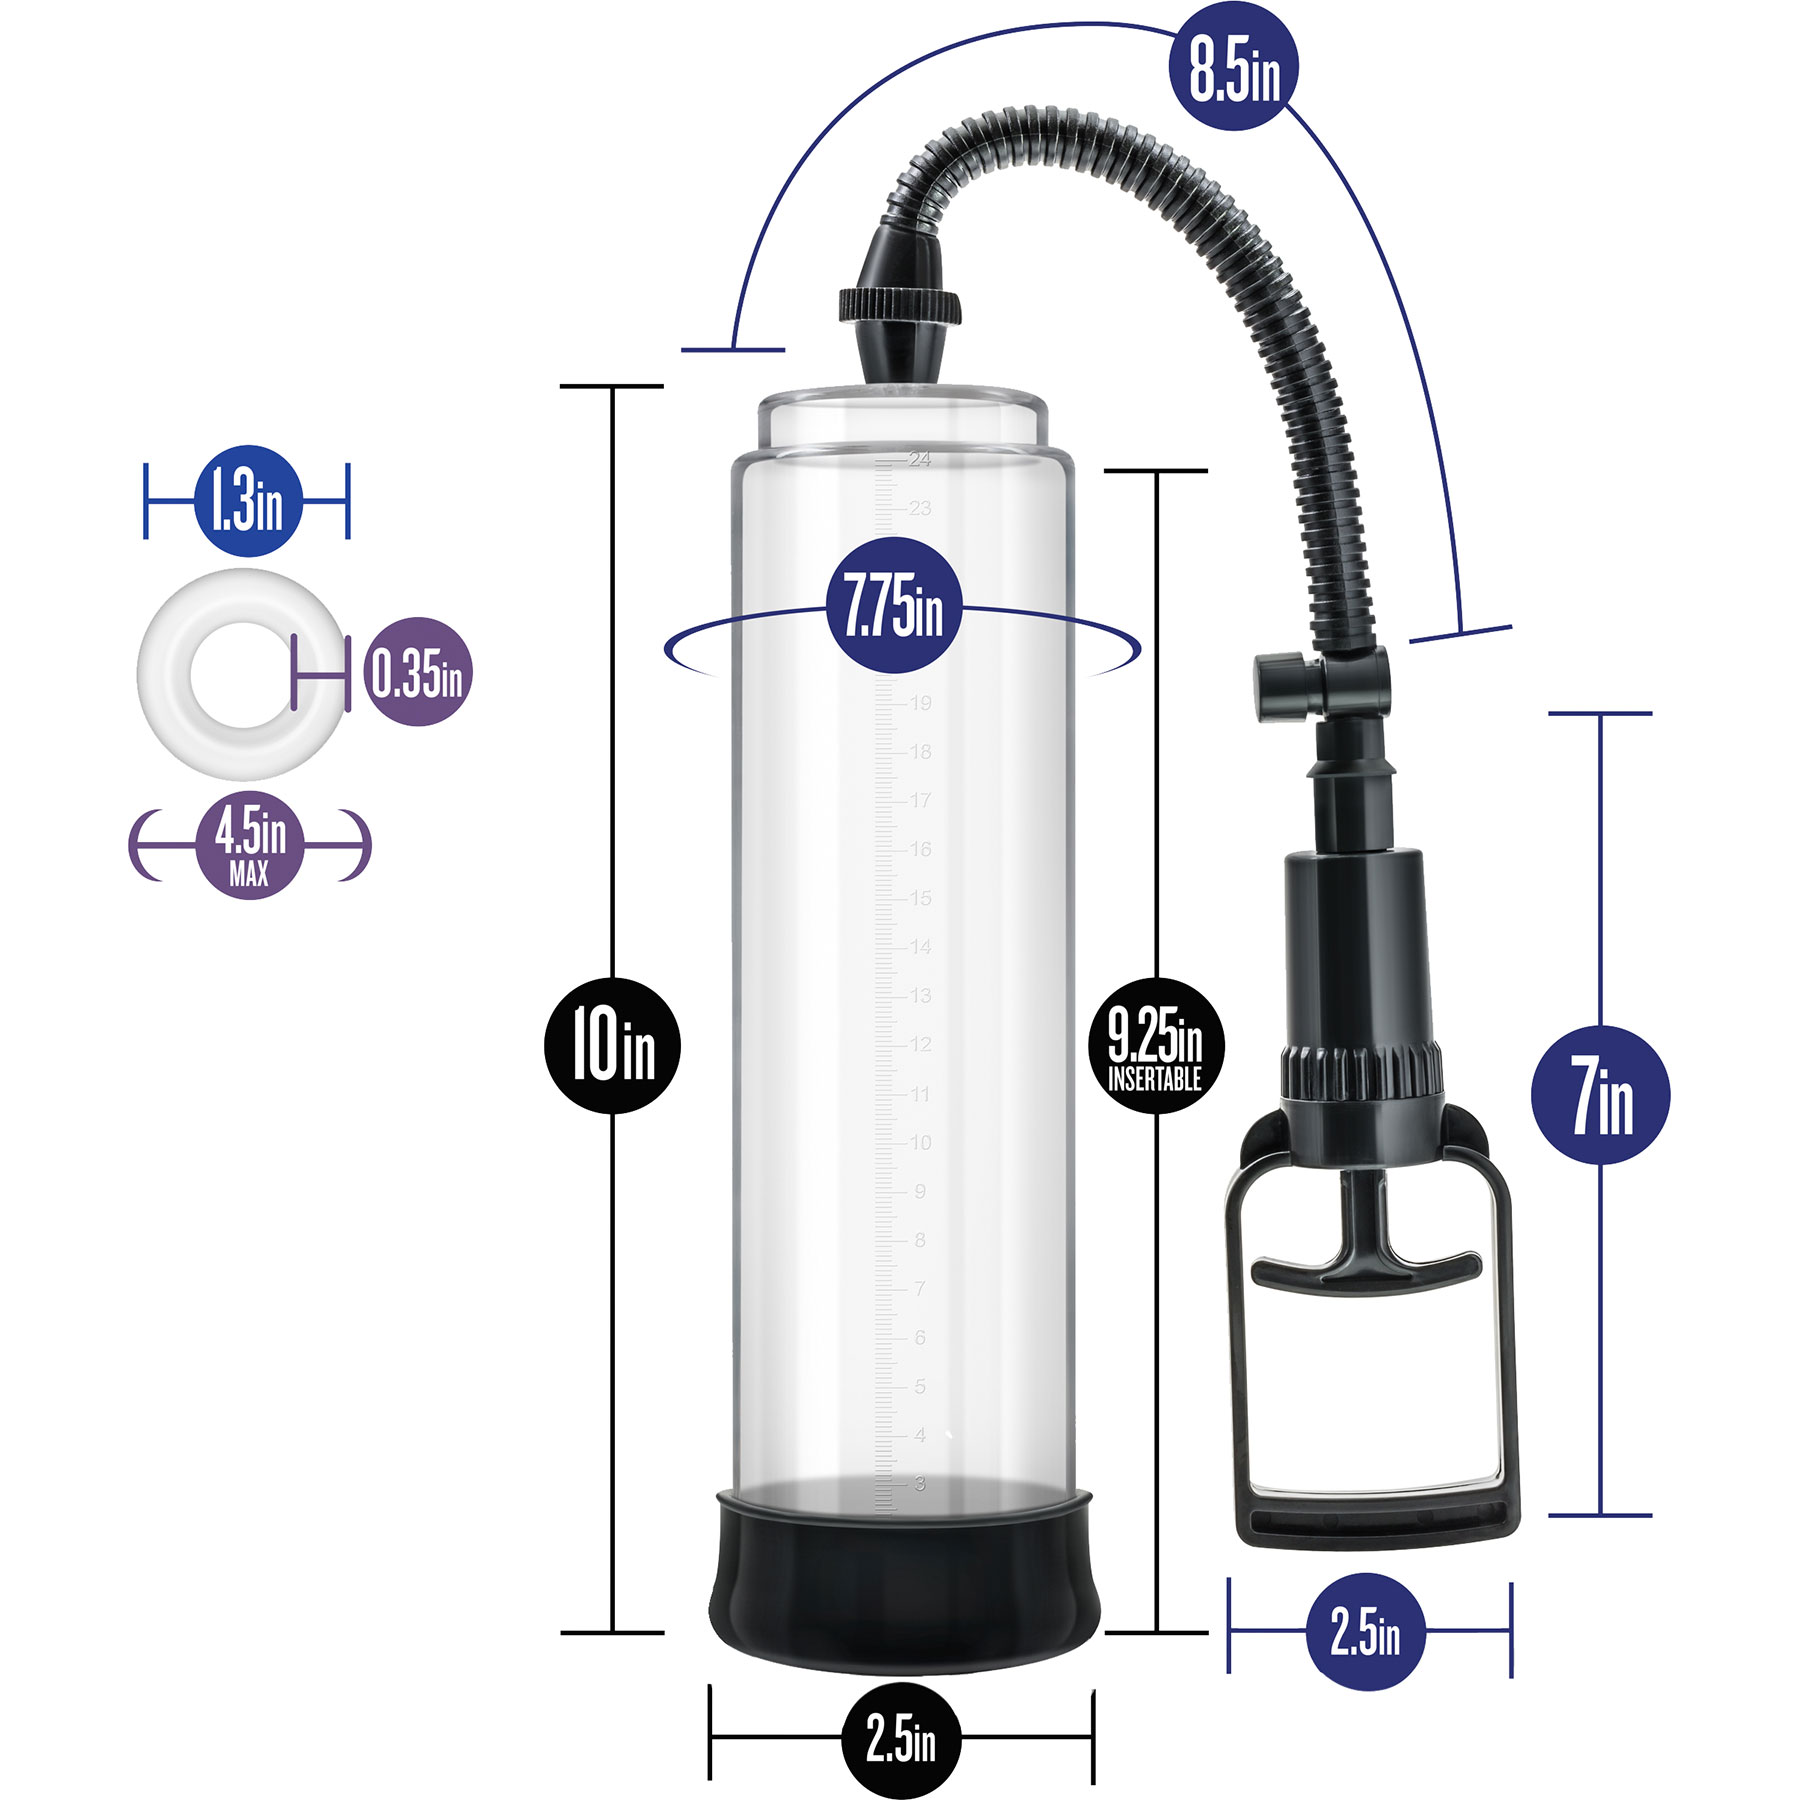 How to use a penis pump, plus buying tips, cost, and more